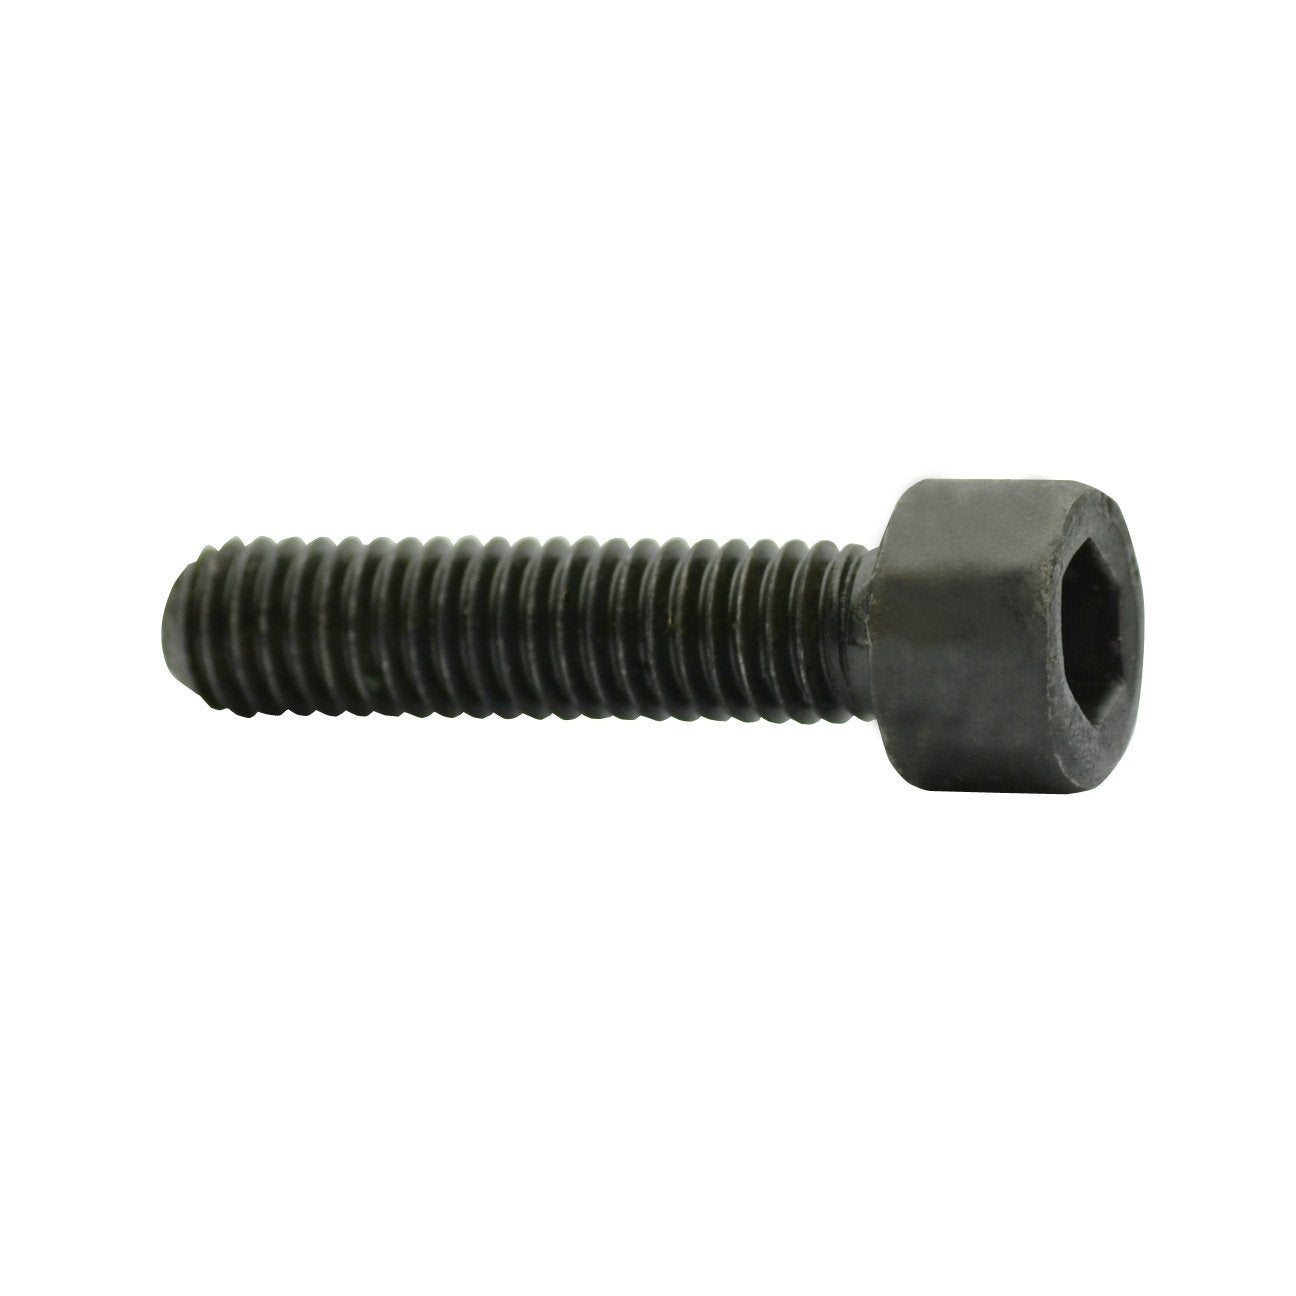 CMT 990.053.00 TCEI Screw, 3 x 10 x 13mm